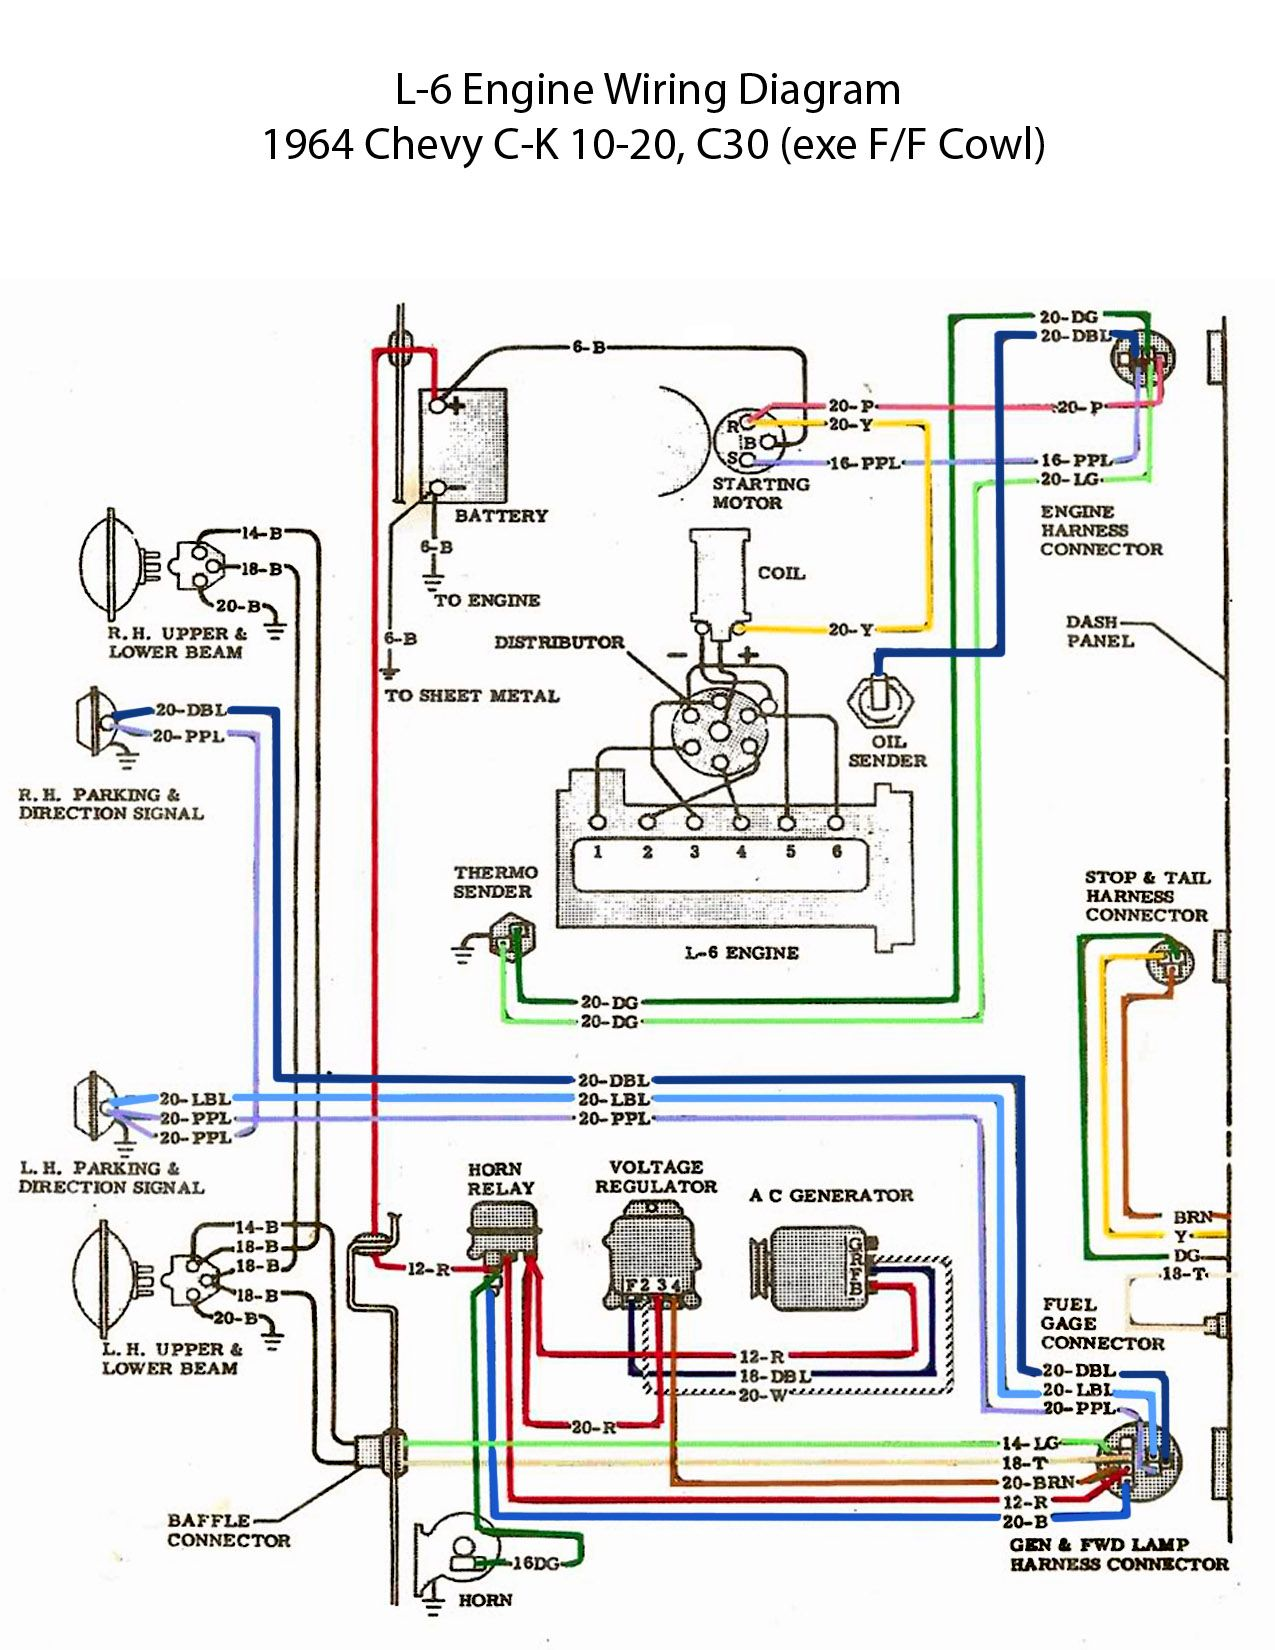 1963 vw bus wiring diagram wiring libraryelectric l 6 engine wiring diagram 1954 chevy truck  [ 1275 x 1650 Pixel ]